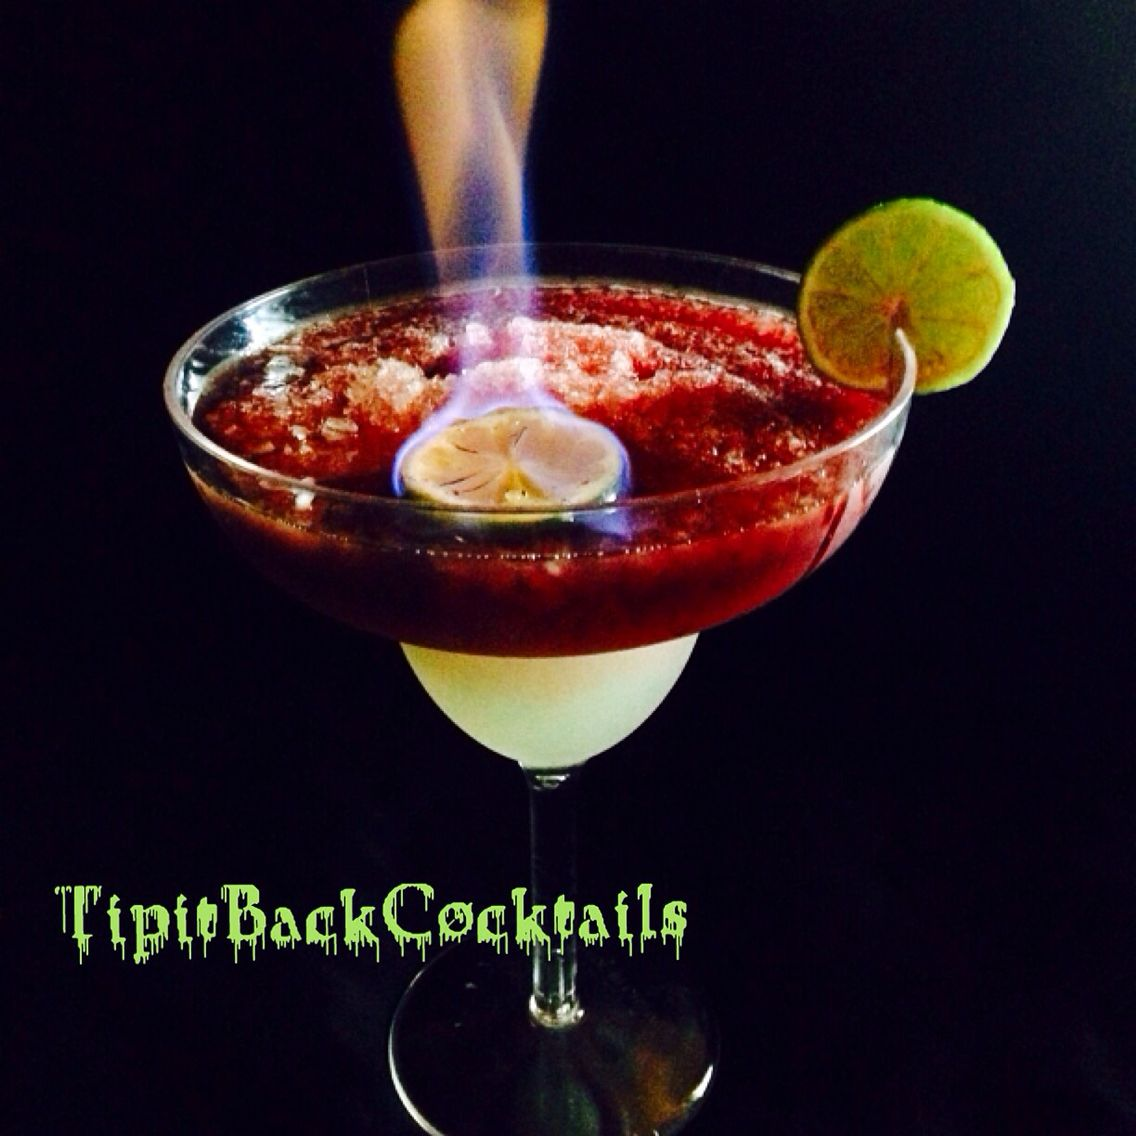 The Devils Margarita Prepare In Blender 6 Oz Classic Lime Margarita Mix 3 Oz Tequila Top Off With Classic Lime Margarita Lime Margarita Lime Margarita Mix